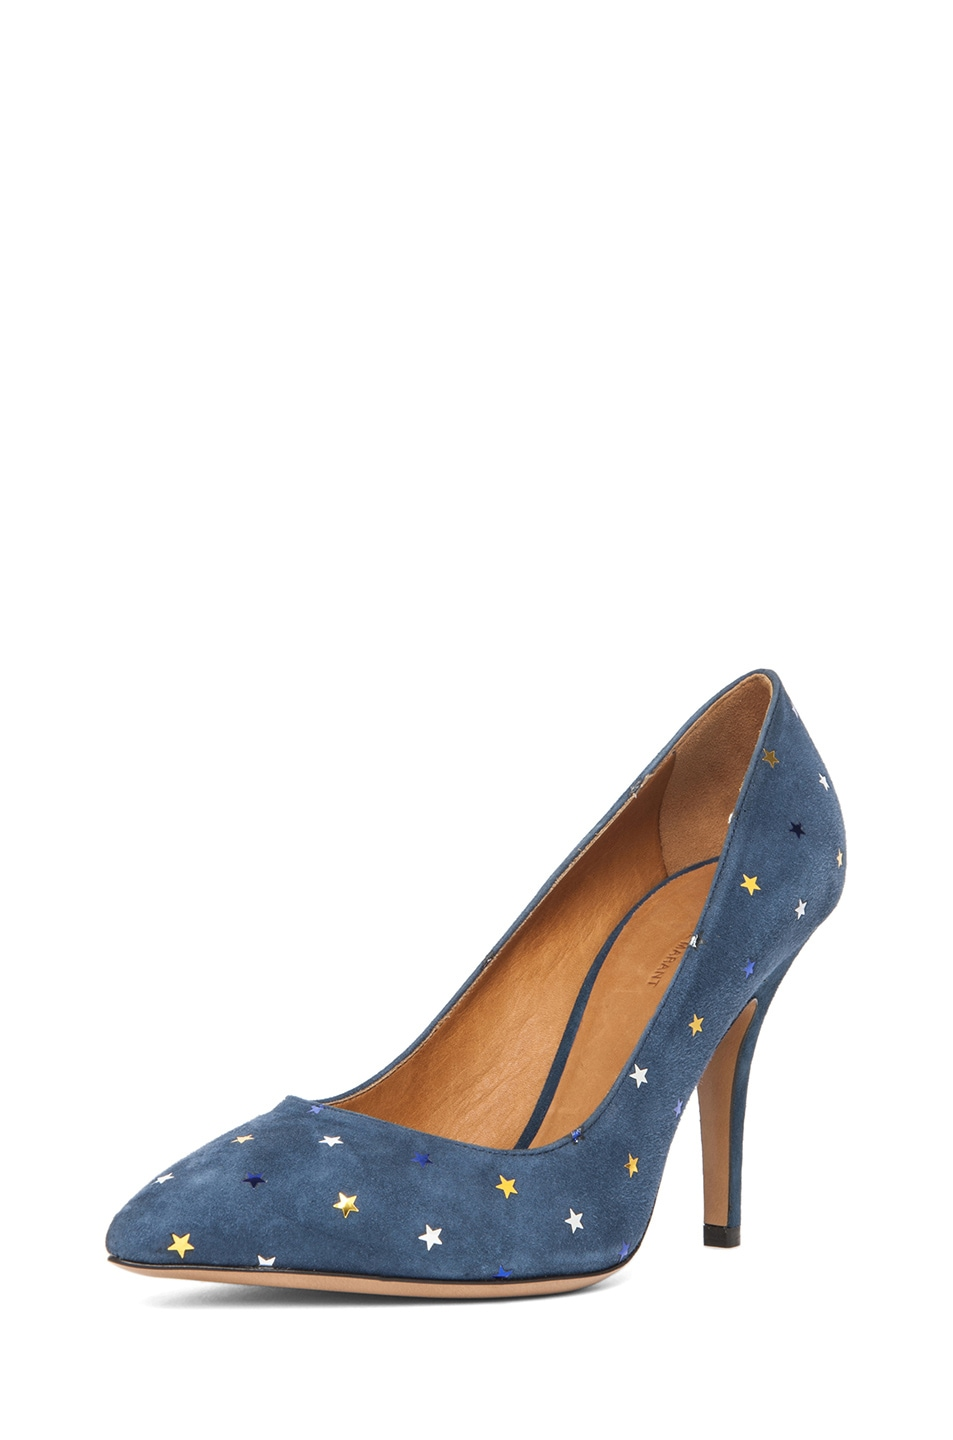 Image 2 of Isabel Marant Anaid Suede Star Pumps in Navy